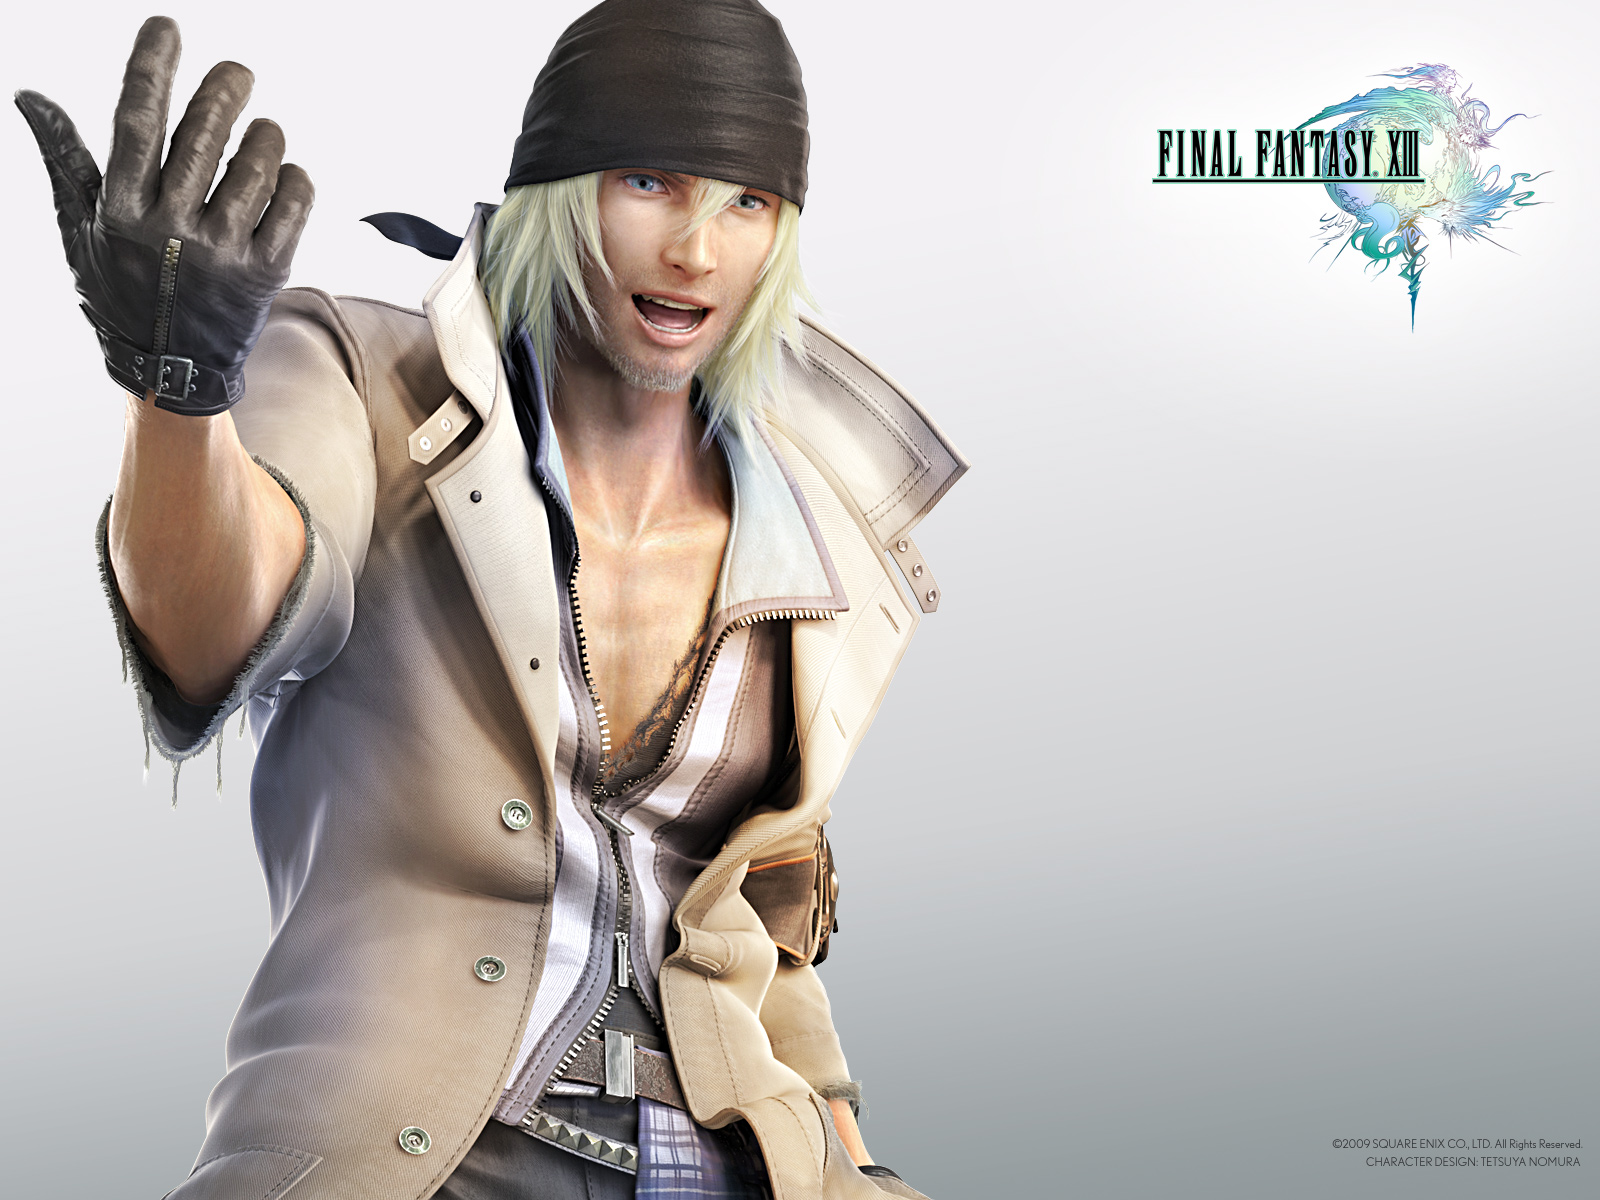 ff13 des photos de - photo #4